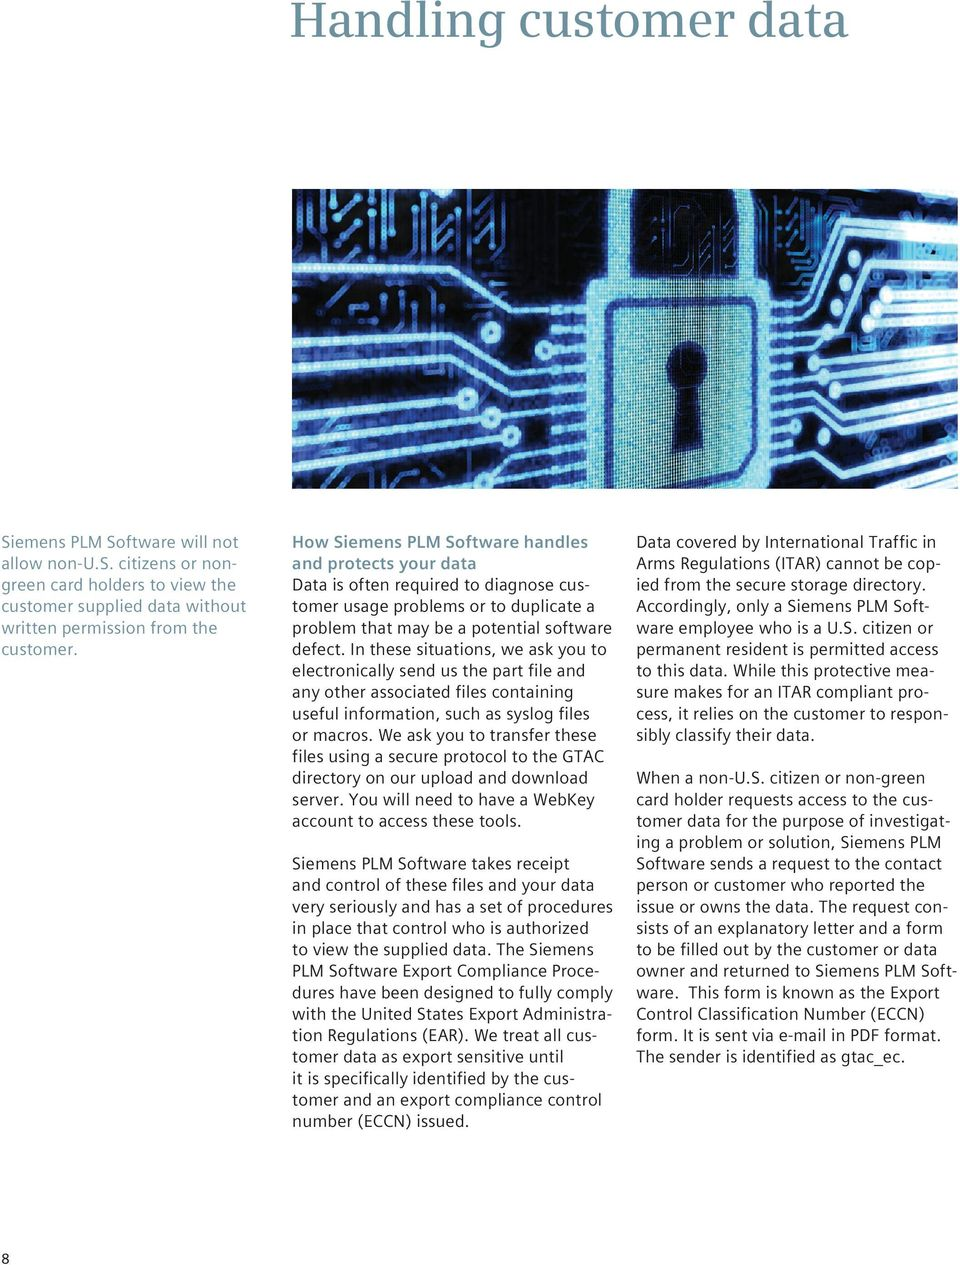 In these situations, we ask you to electronically send us the part file and any other associated files containing useful information, such as syslog files or macros.